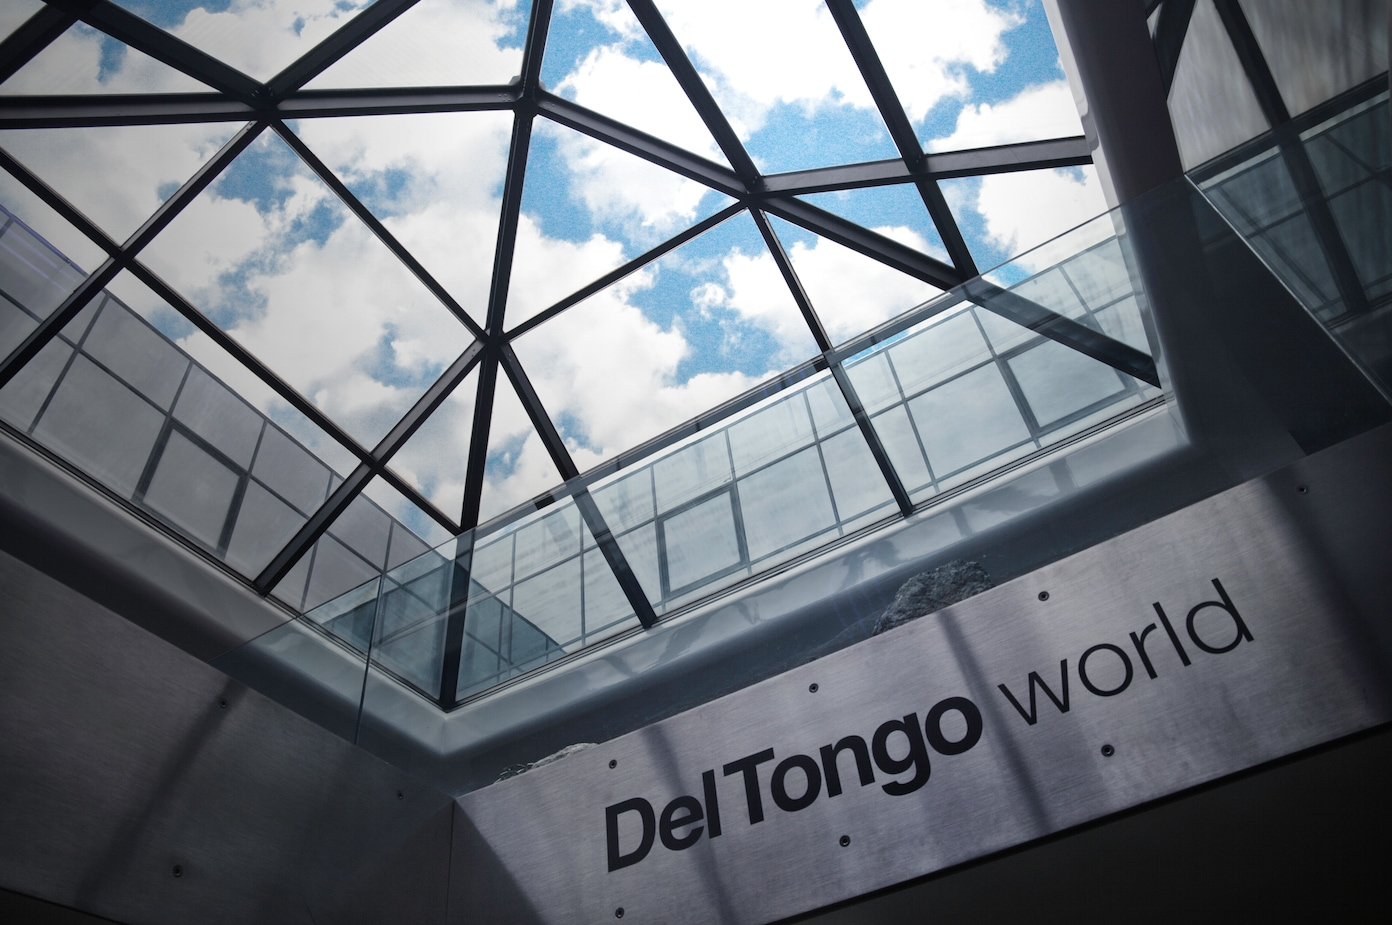 2016 Del Tongo: an intense and very successful year